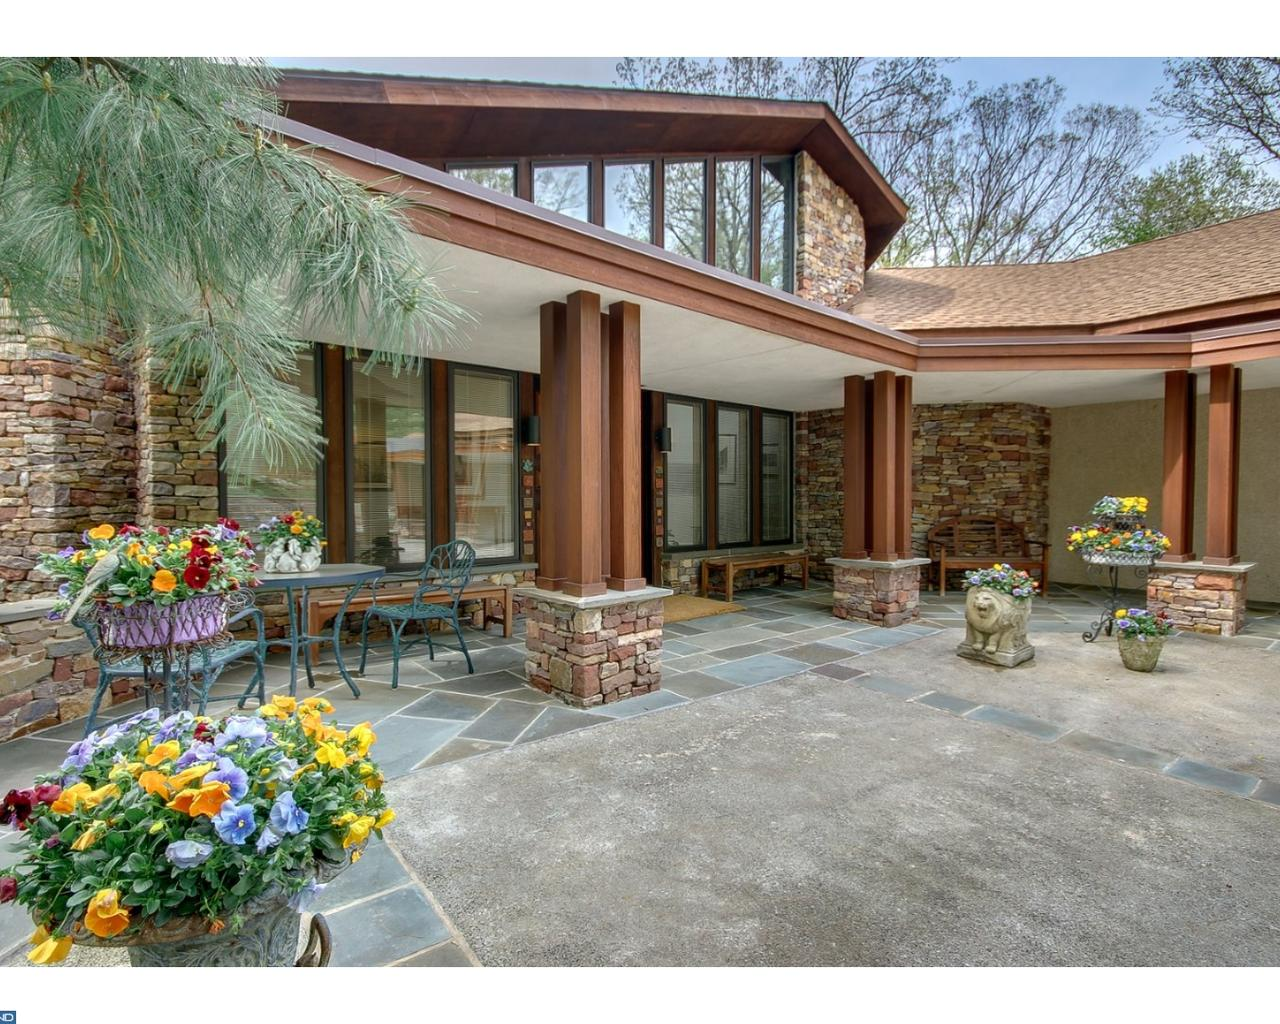 4 Incredible Contemporary Homes for Sale in Montco